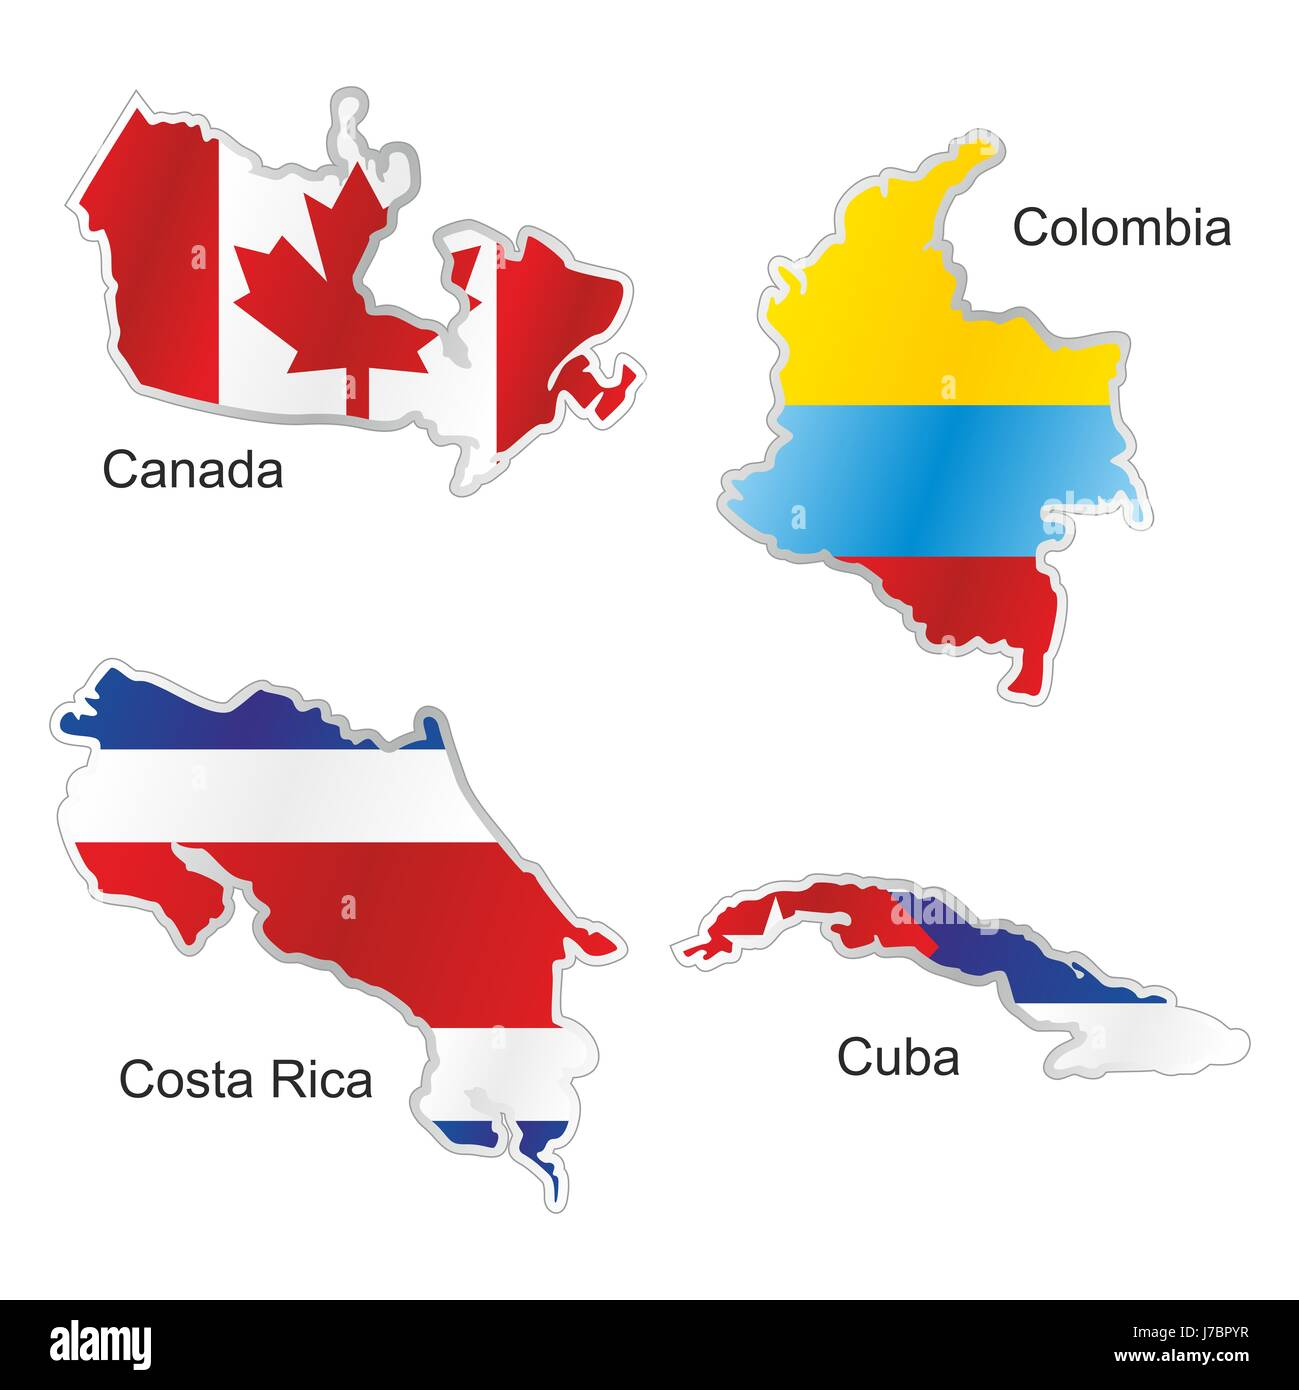 America illustration canada colombia cuba map atlas map of the world america illustration canada colombia cuba map atlas map of the world isolated gumiabroncs Images